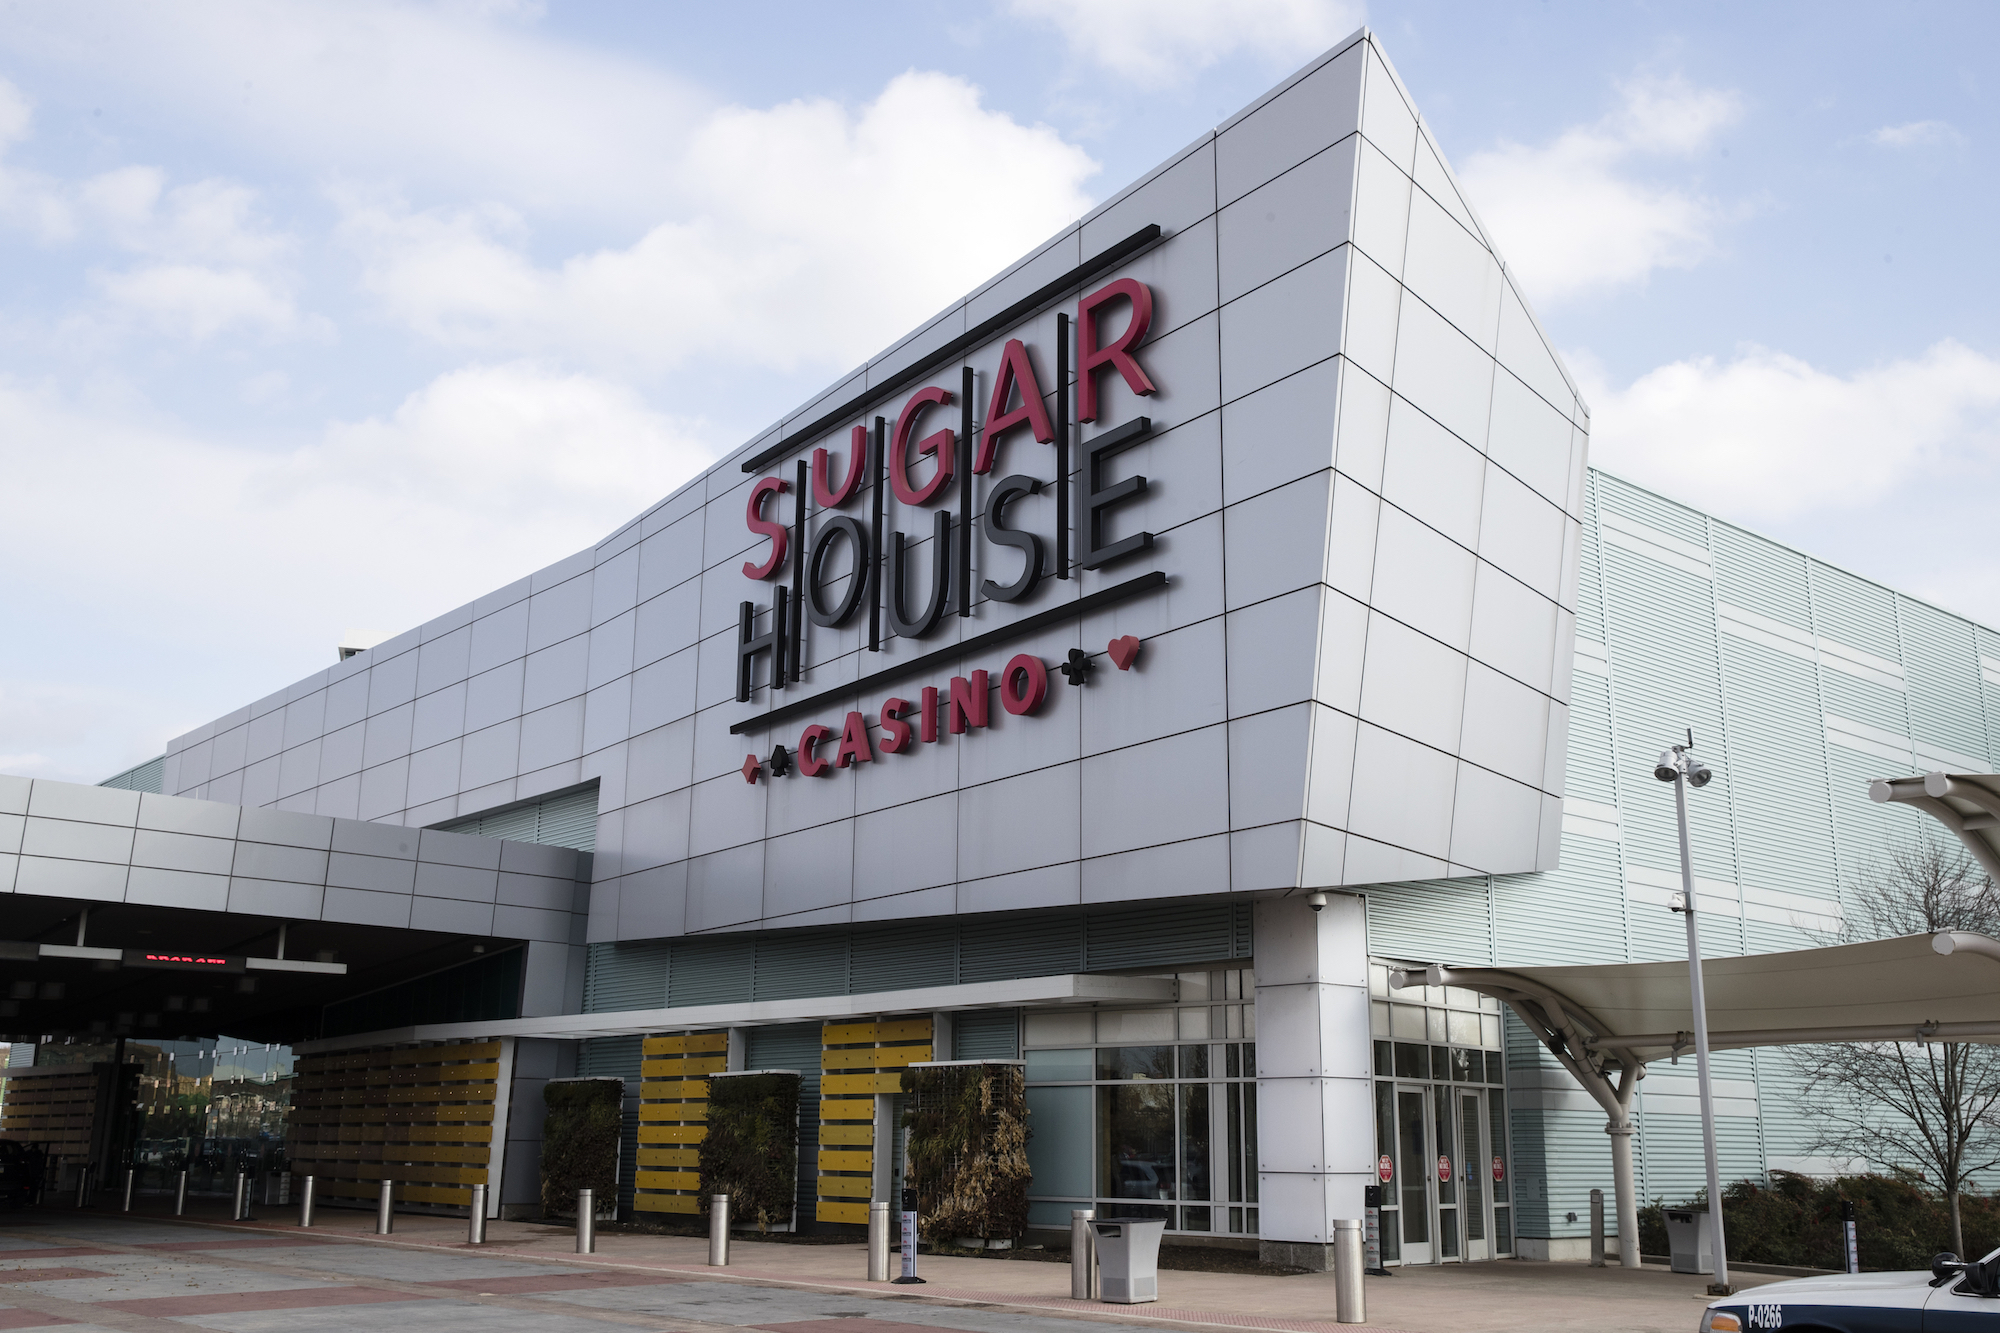 Sugarhouse Casino